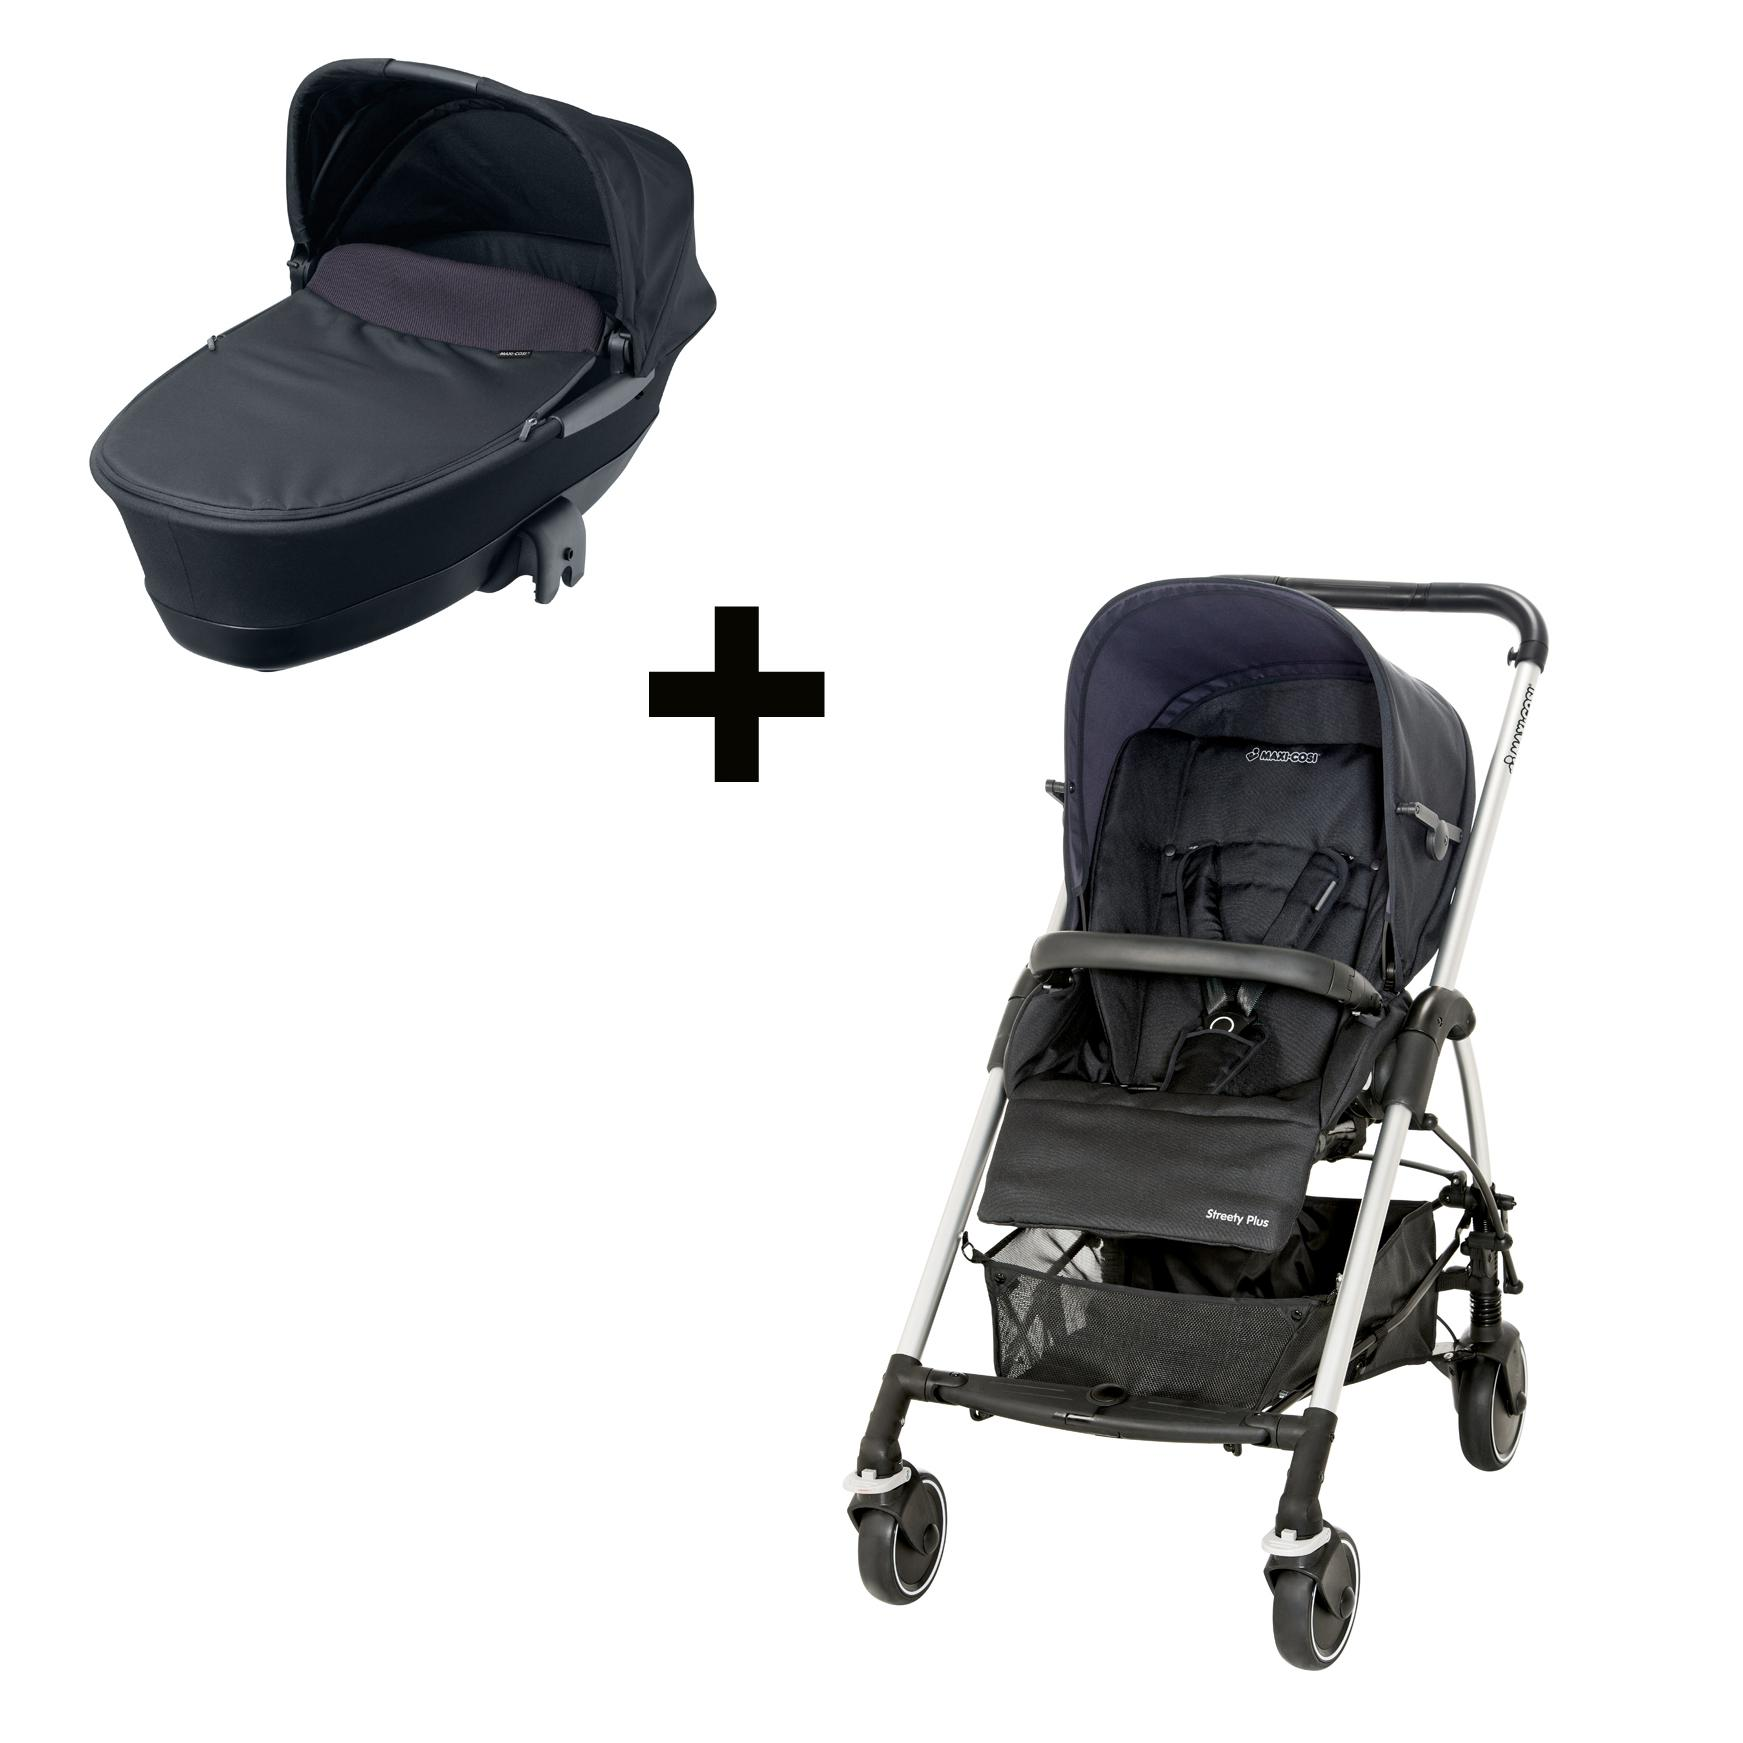 maxi cosi 19333397 streety pack kombikinderwagen buggy travelsystem total black amazon. Black Bedroom Furniture Sets. Home Design Ideas